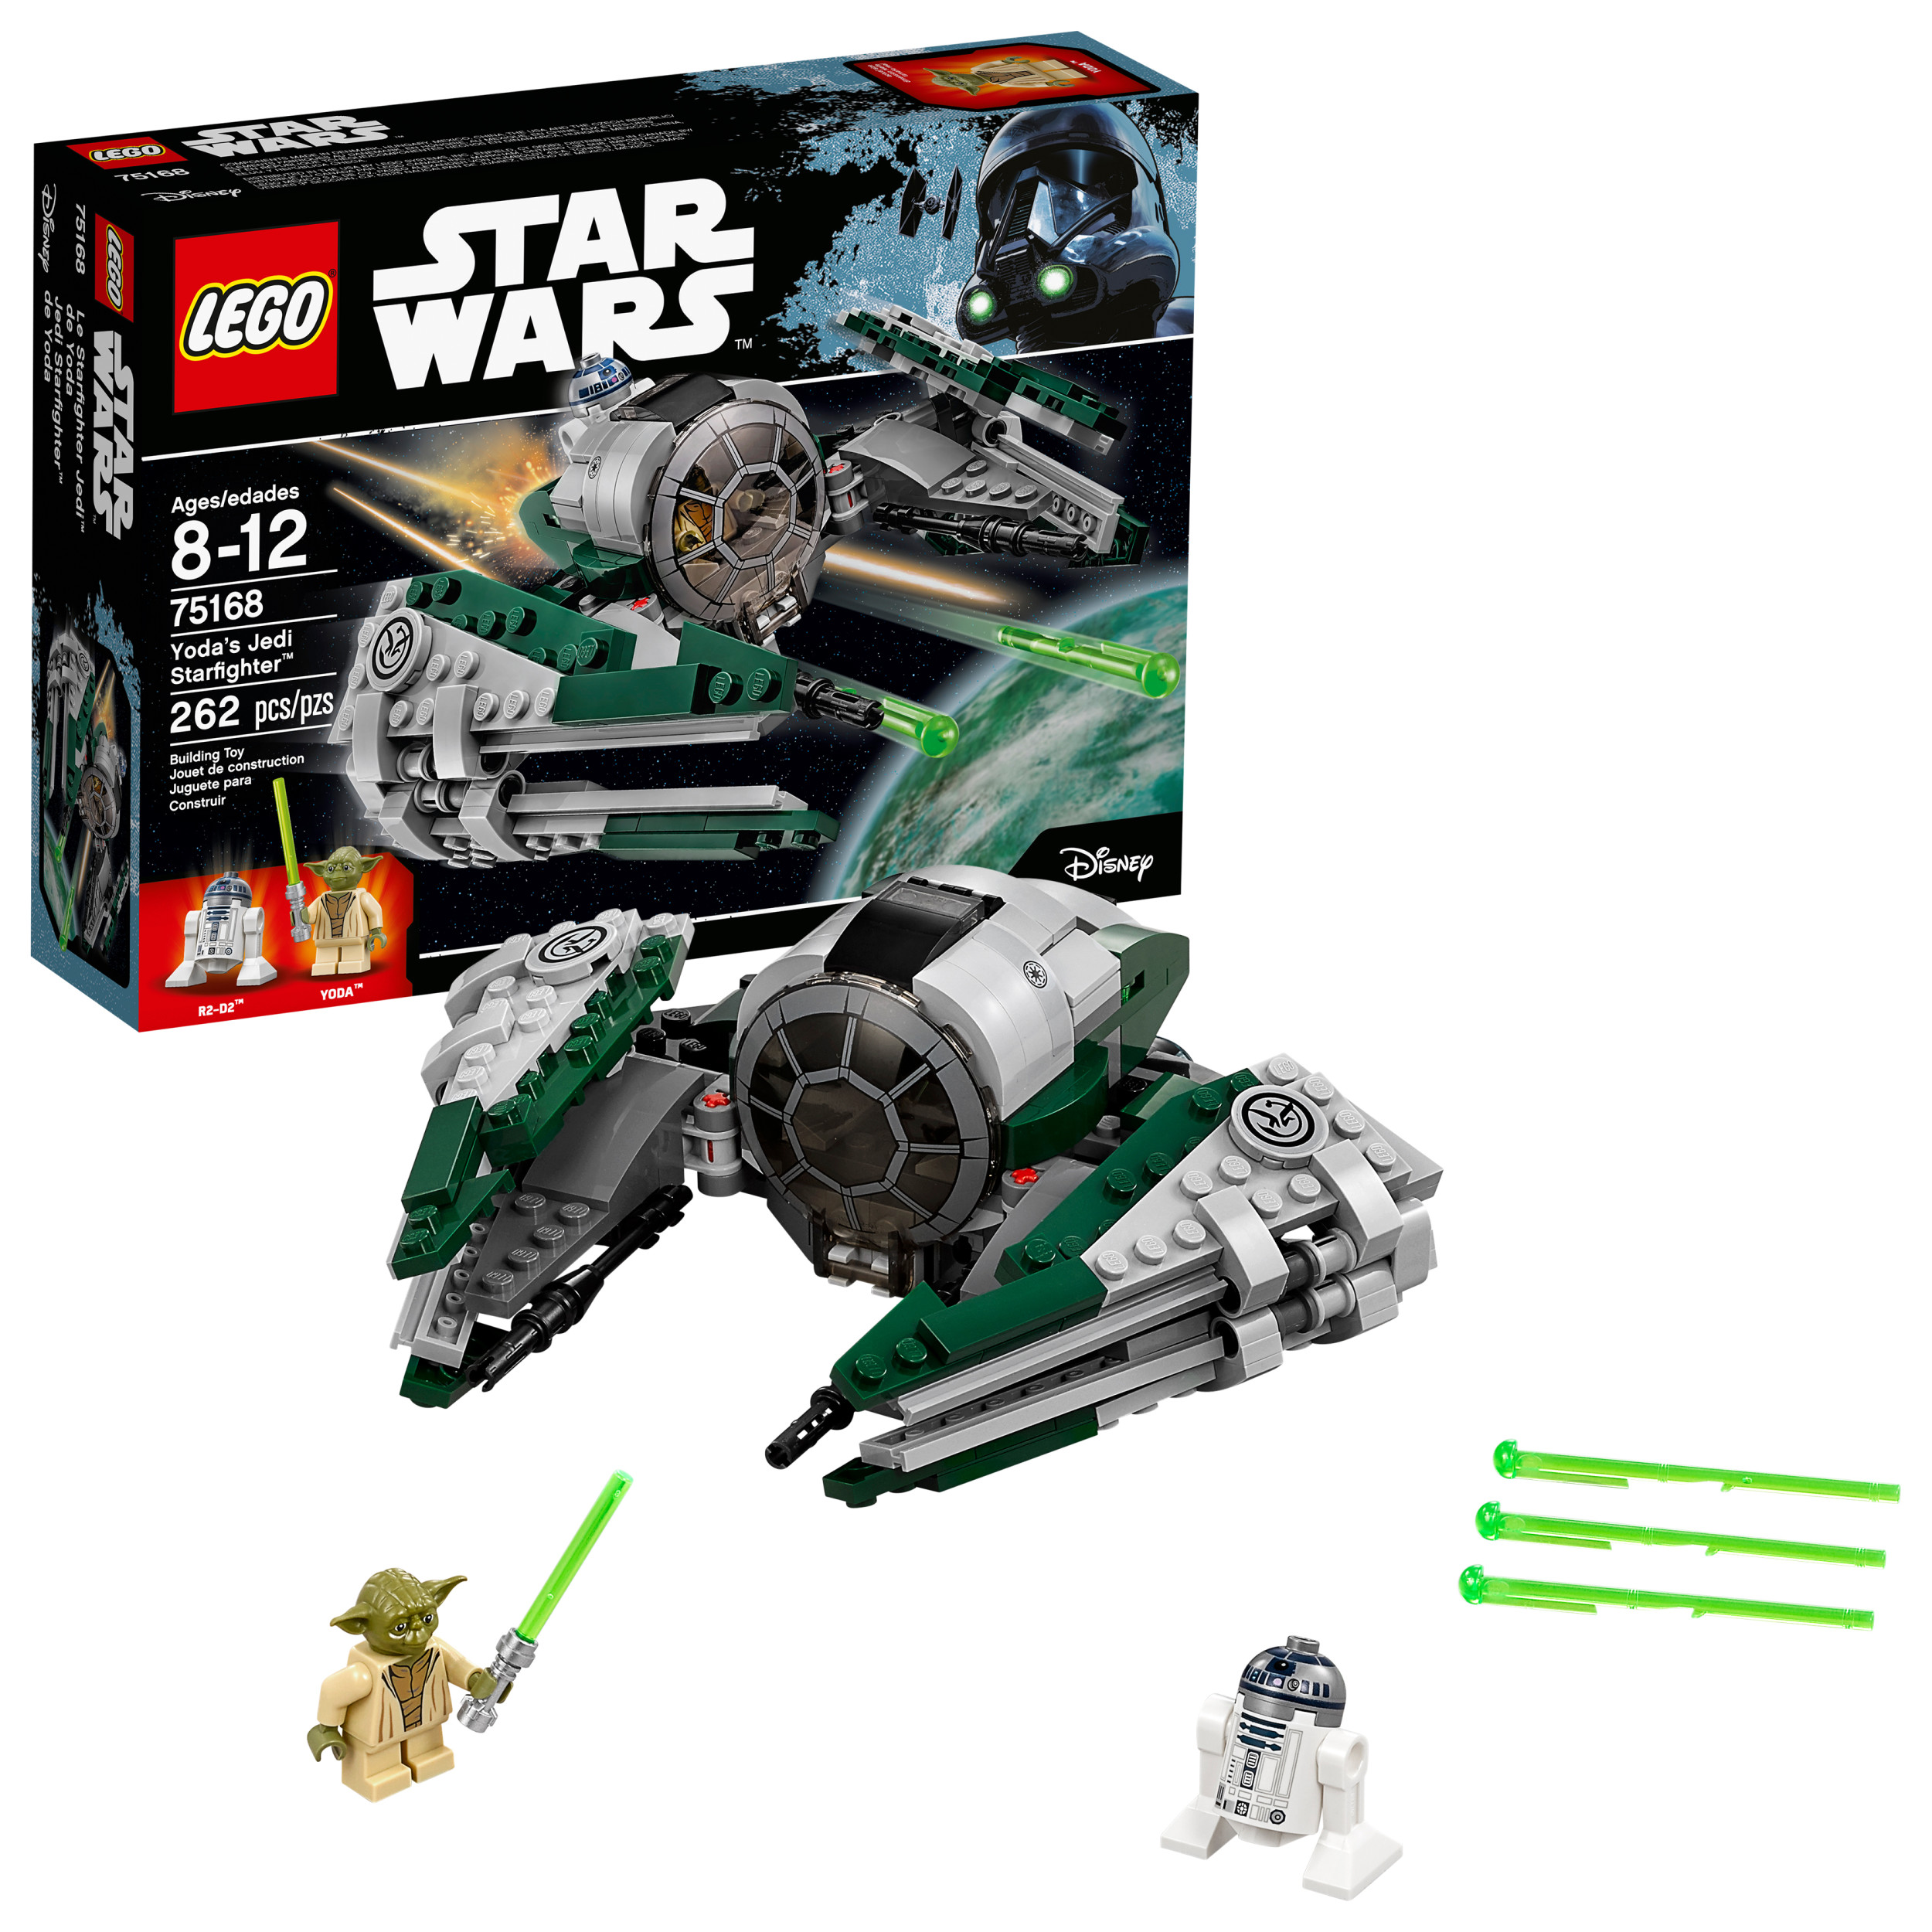 LEGO Star Wars TM Yoda's Jedi Starfighter 75168